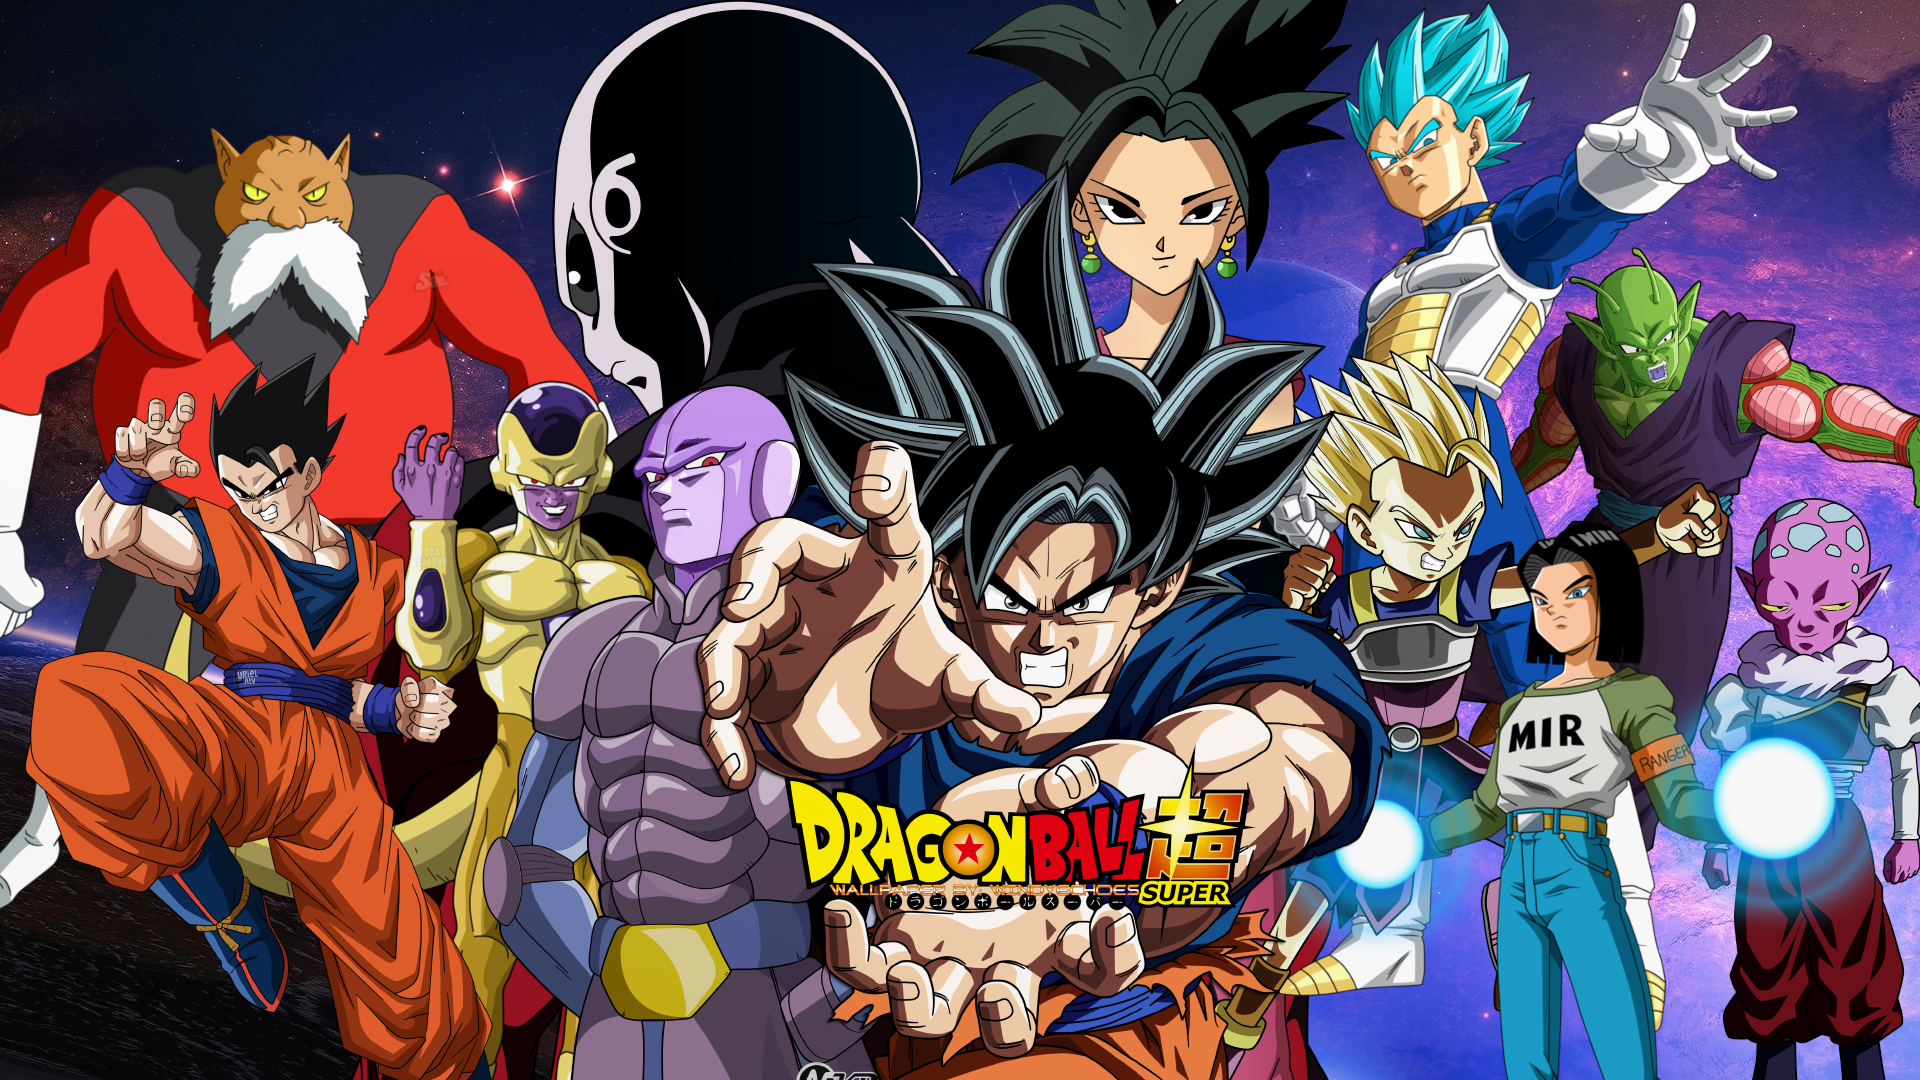 Fotos Do Fusion 2018 >> STRONGEST Tournament Of Power Fighters WALLPAPER by WindyEchoes on DeviantArt